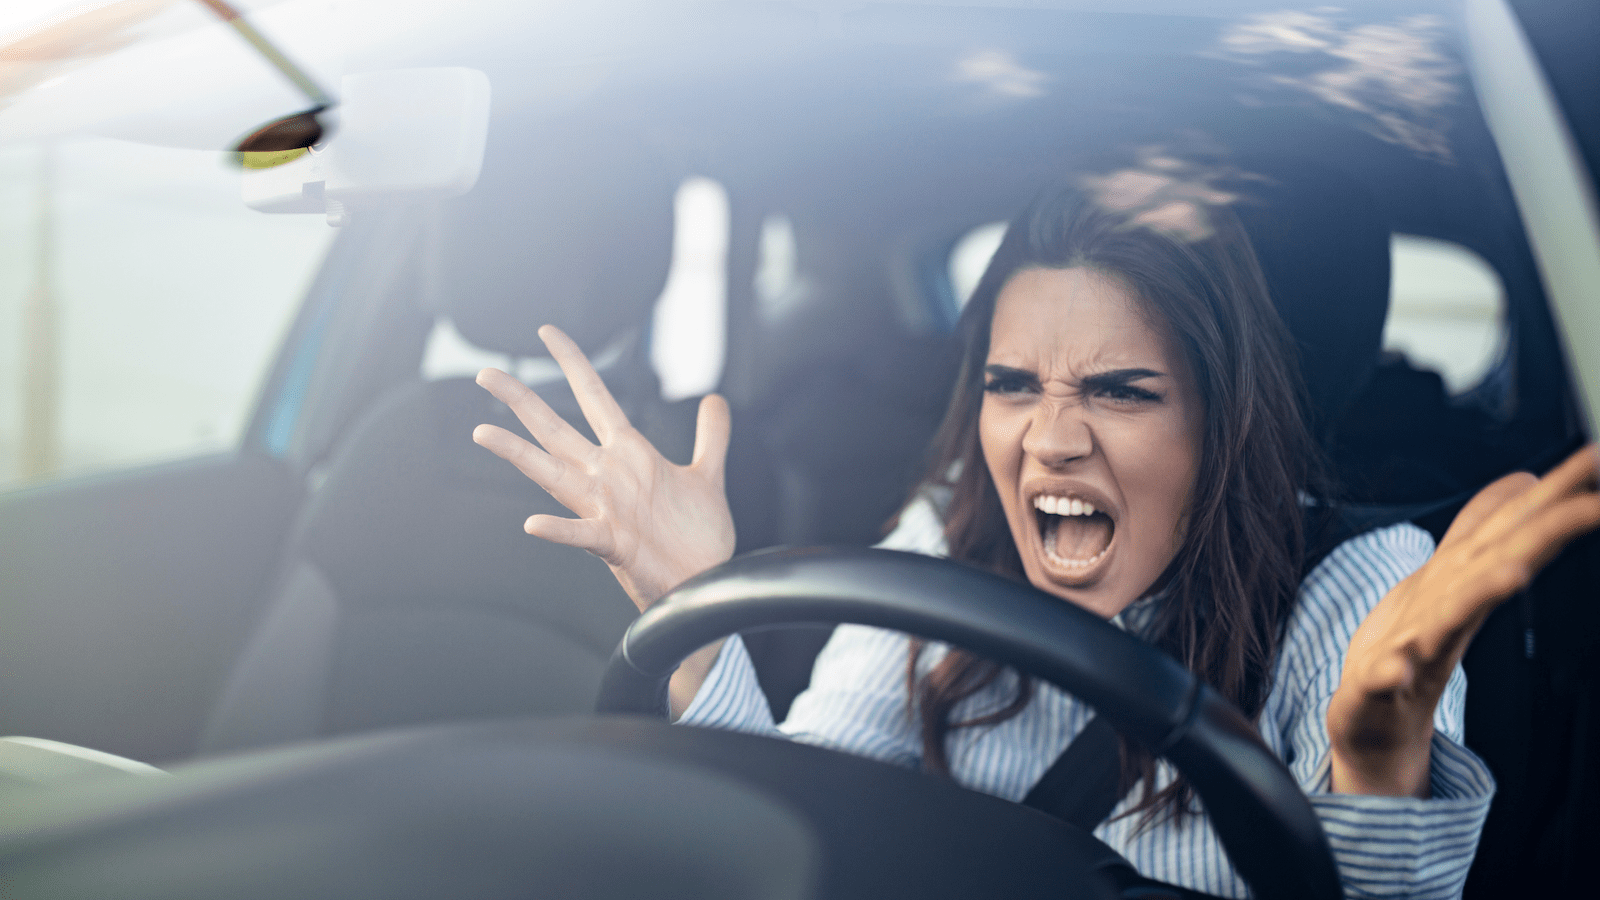 young indian woman can't control her anger issues in the car